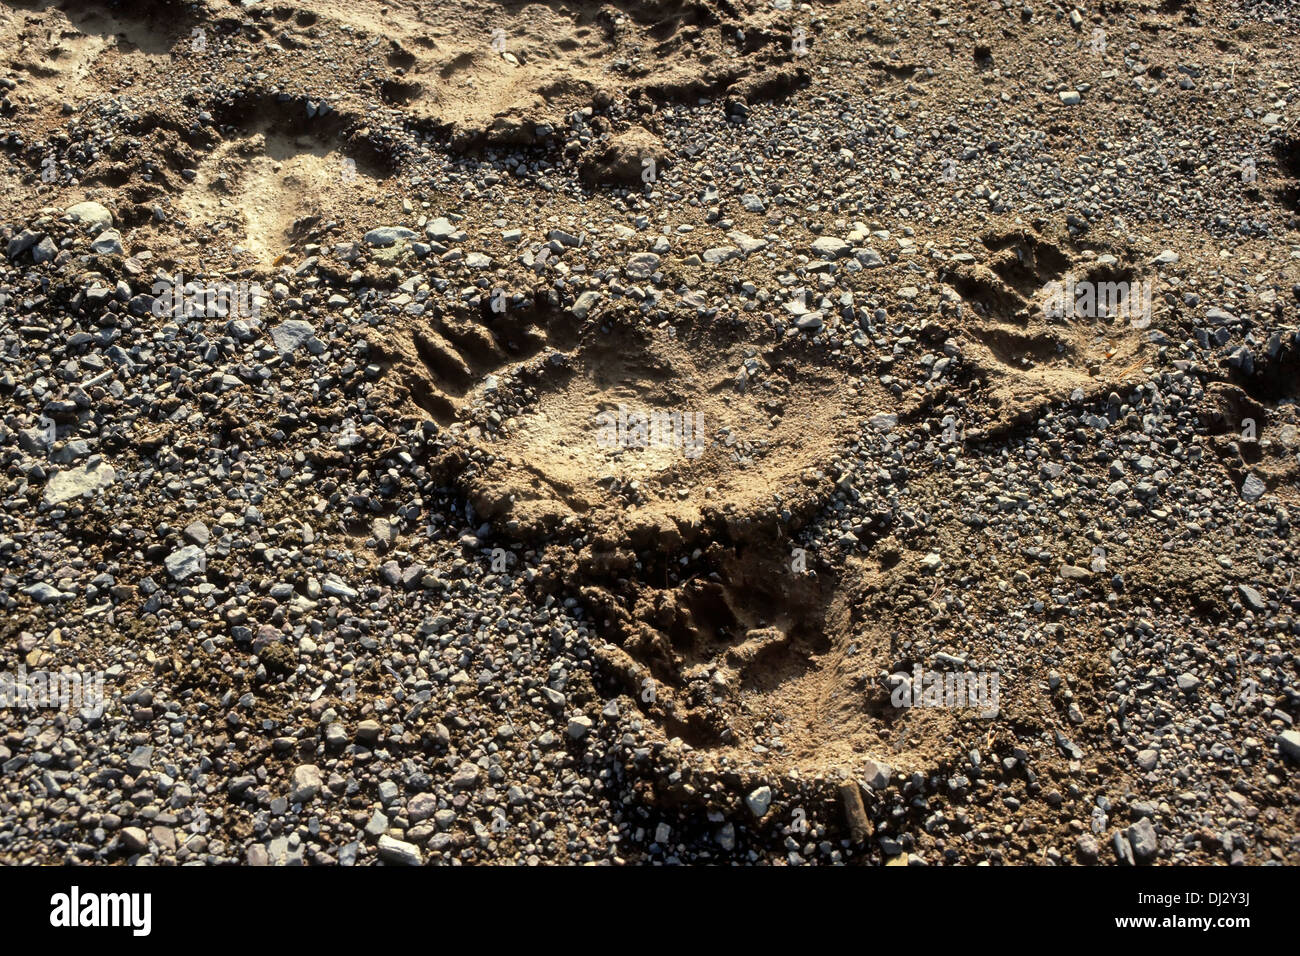 Footprint of the brown bear, brown bear (Ursus arctos), Fußspur des Braunbärs, Braunbär (Ursus arctos) Stock Photo